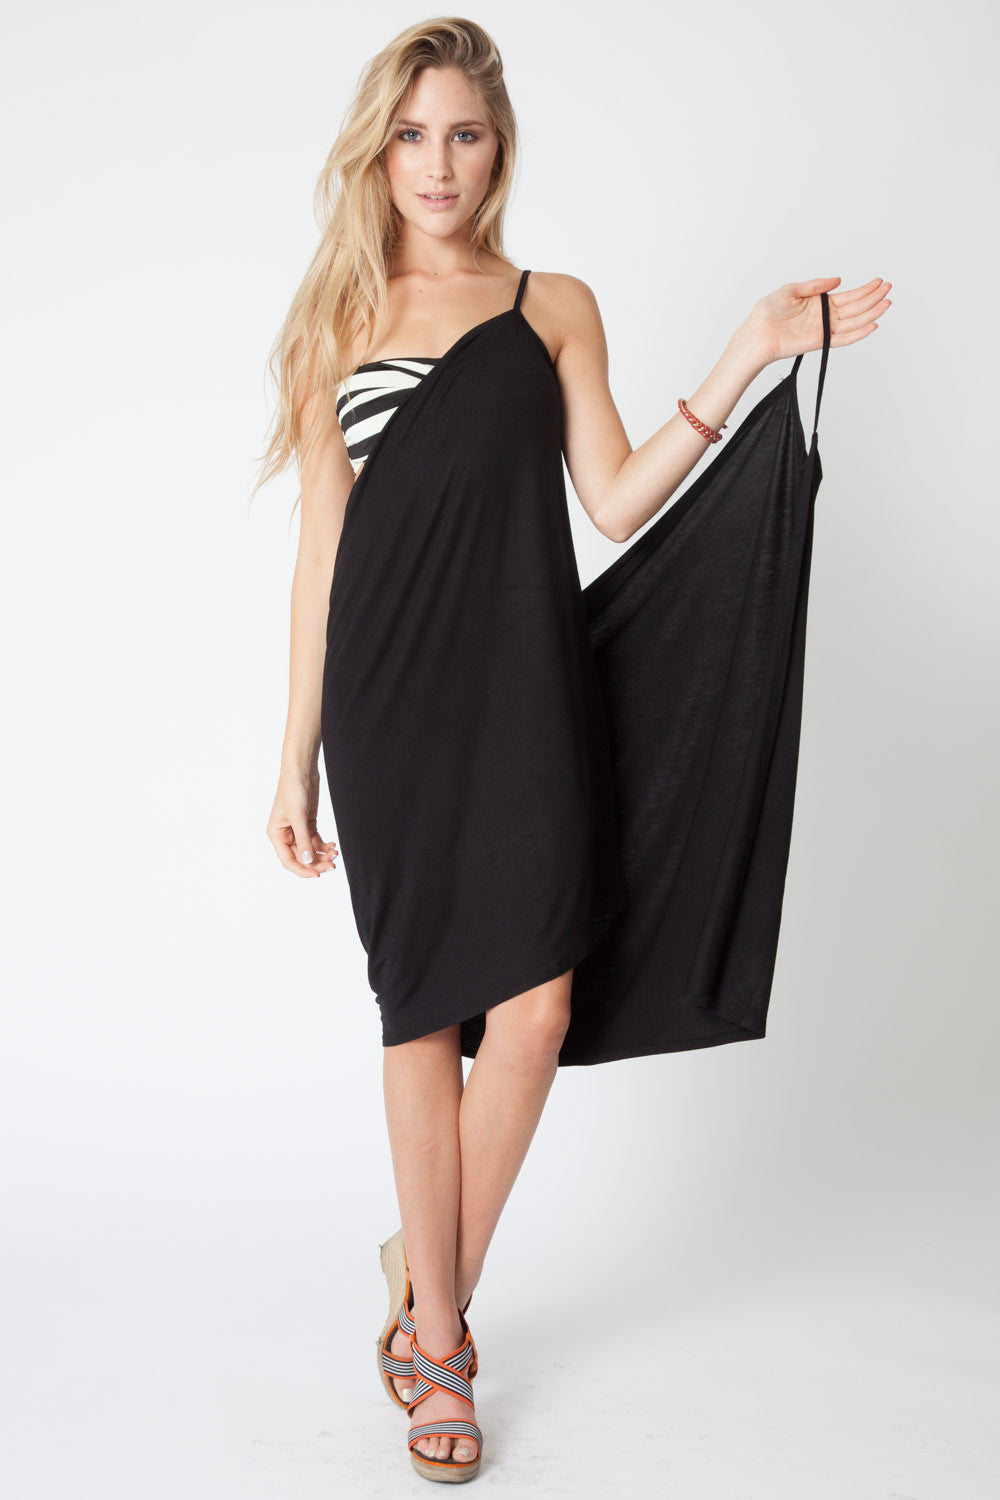 Convertible Beach Wrap Dress in Black